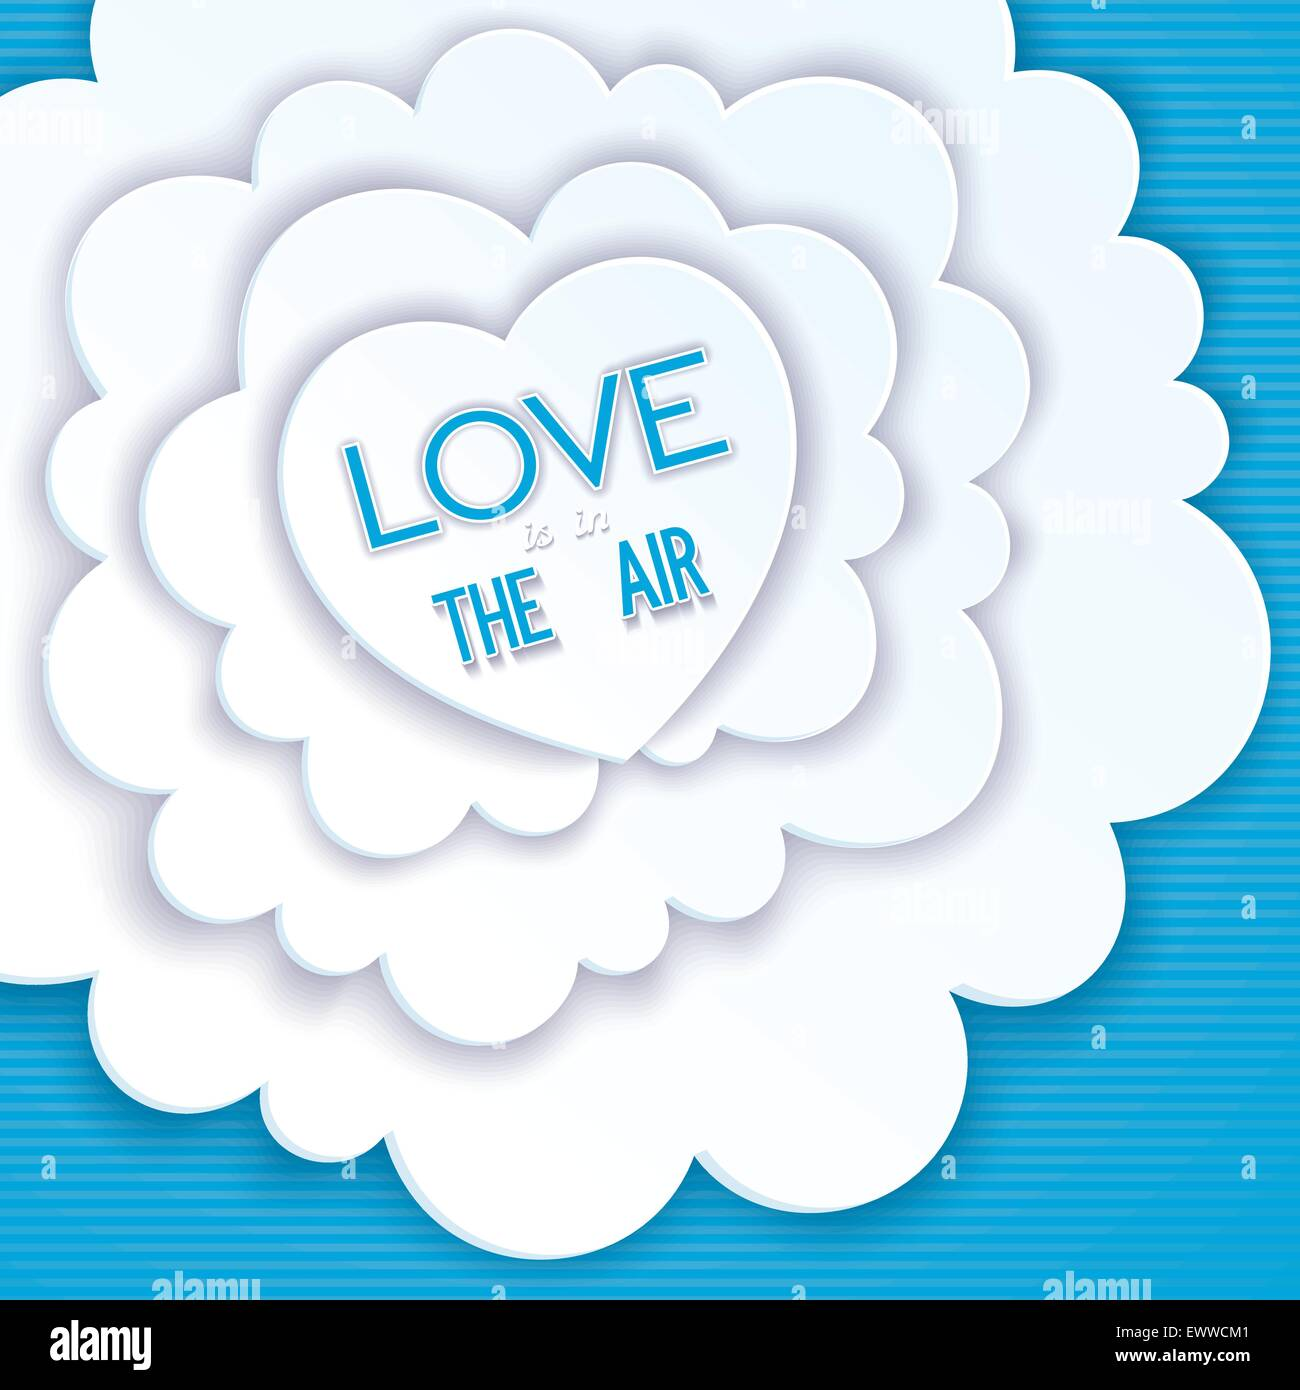 Heart in the clouds, love is in the air. Creative greeting card - Stock Image